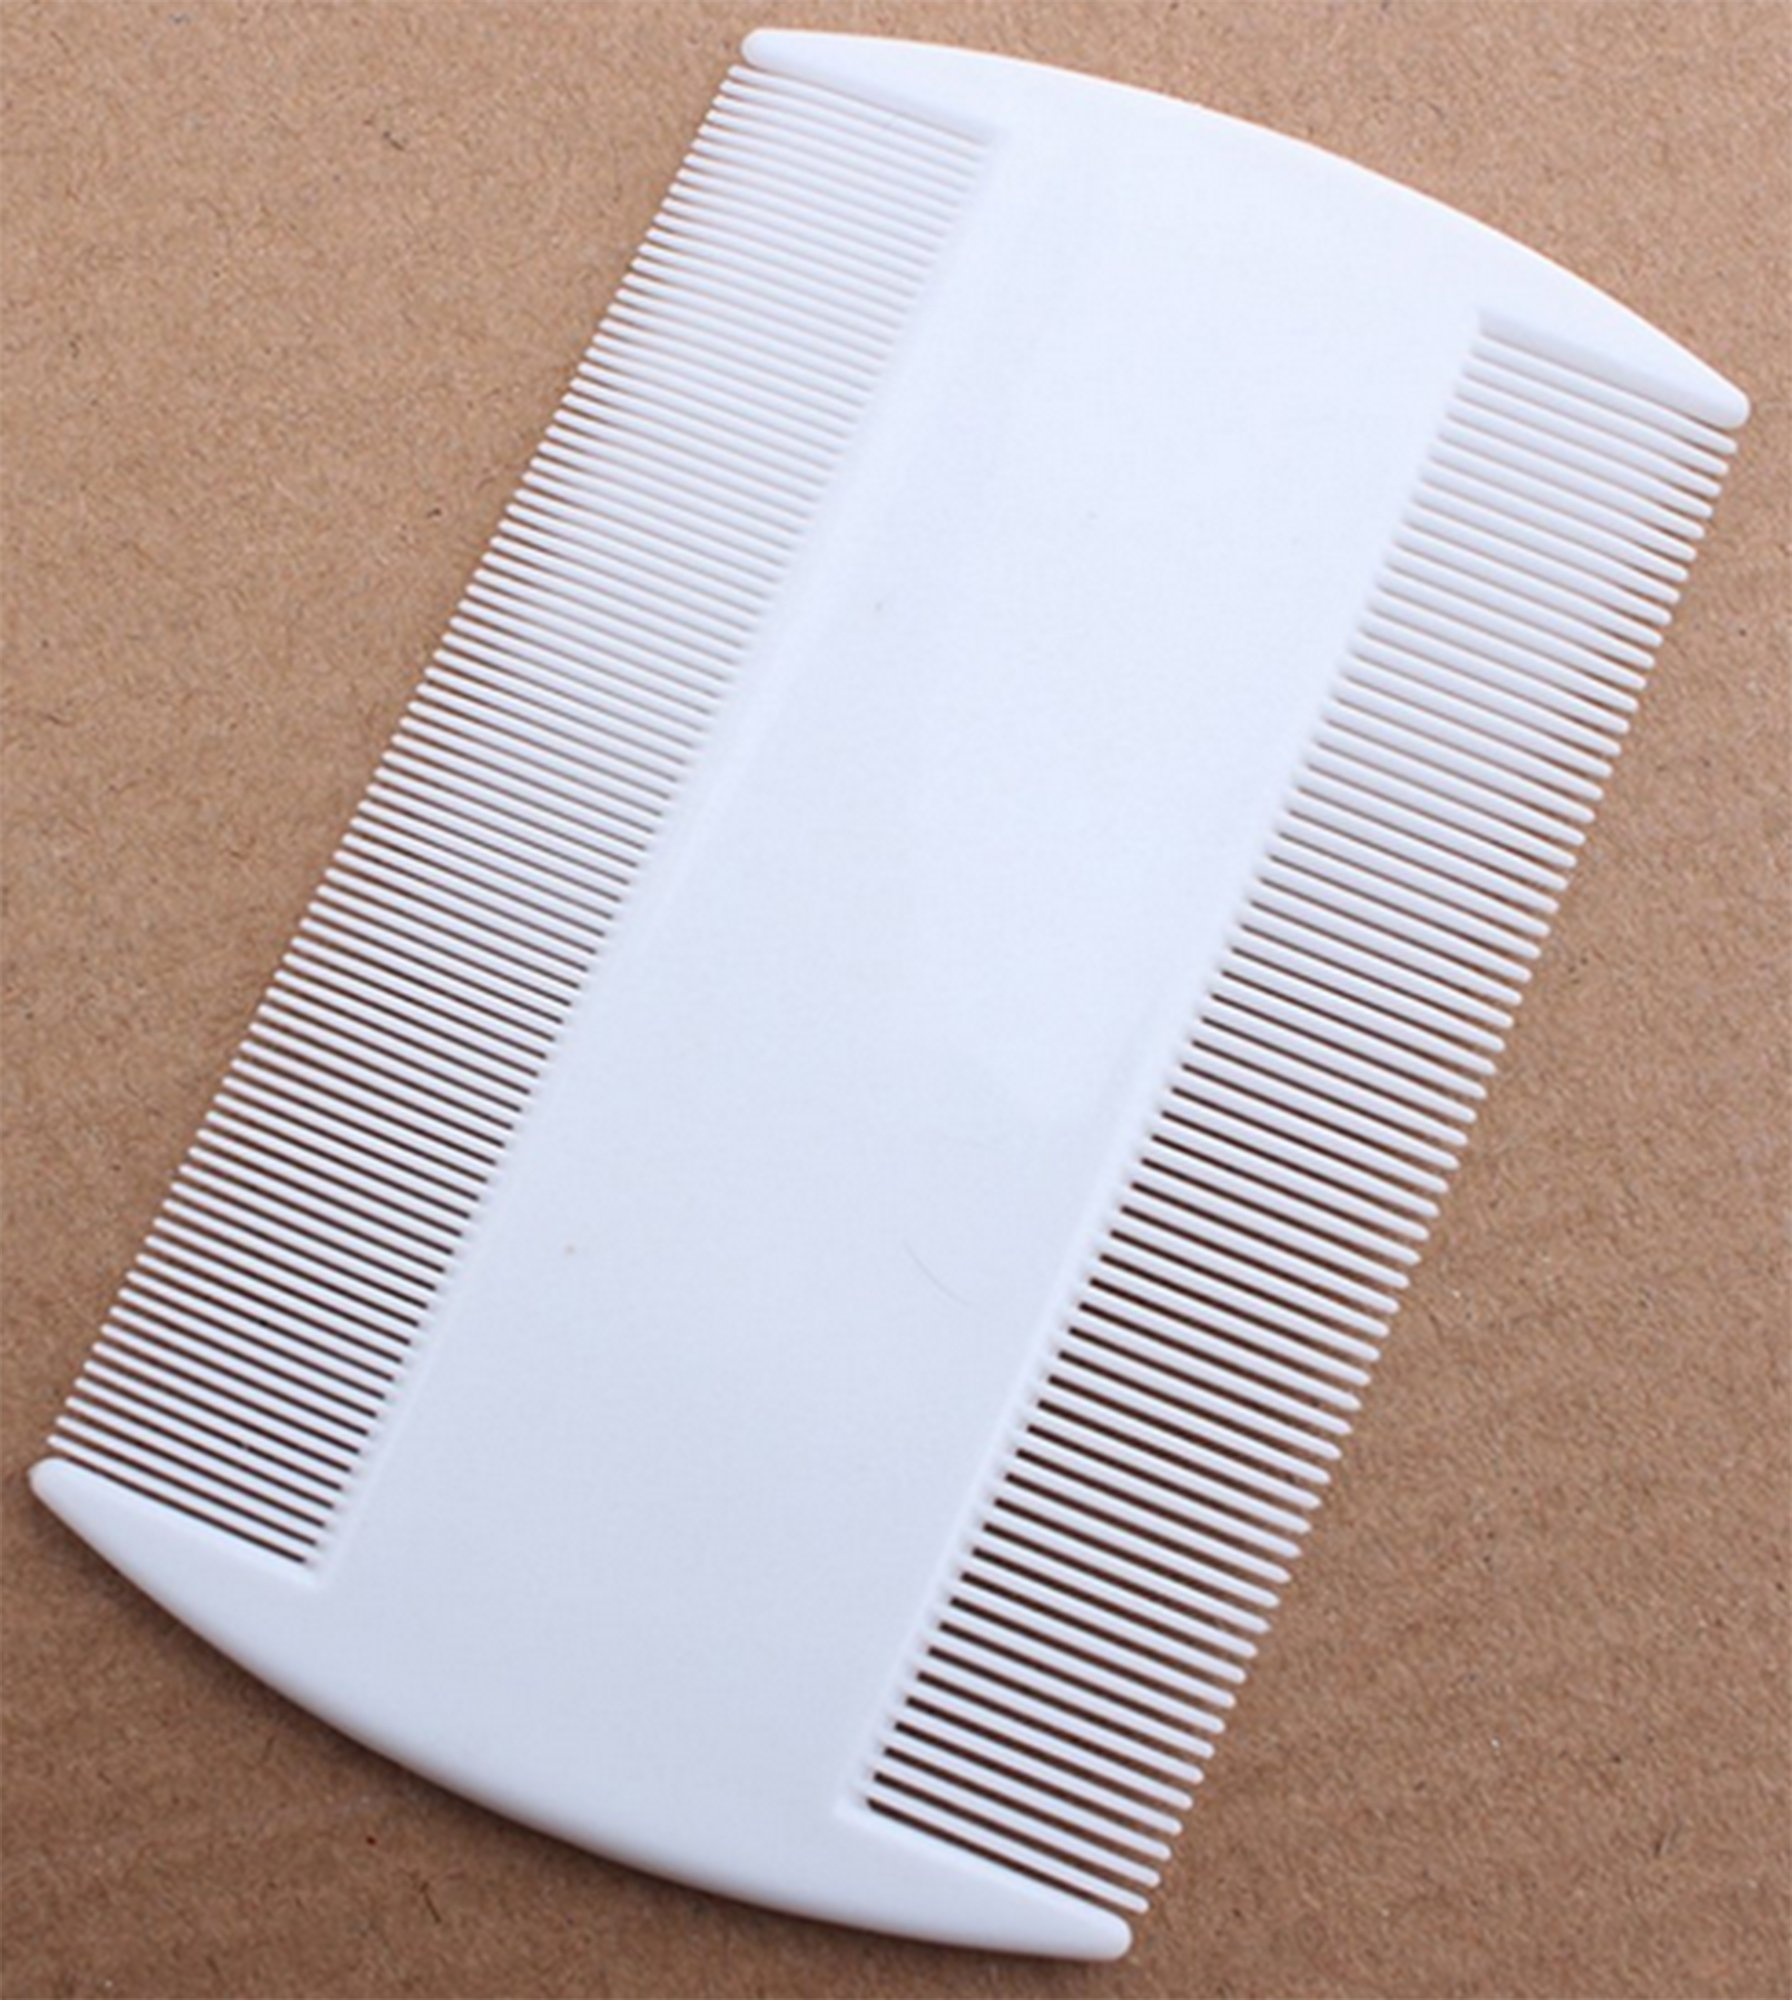 nobrand Nit Comb, Double Sided, Removes Nits, Lice and Fleas and Eggs from Short Haired Pets